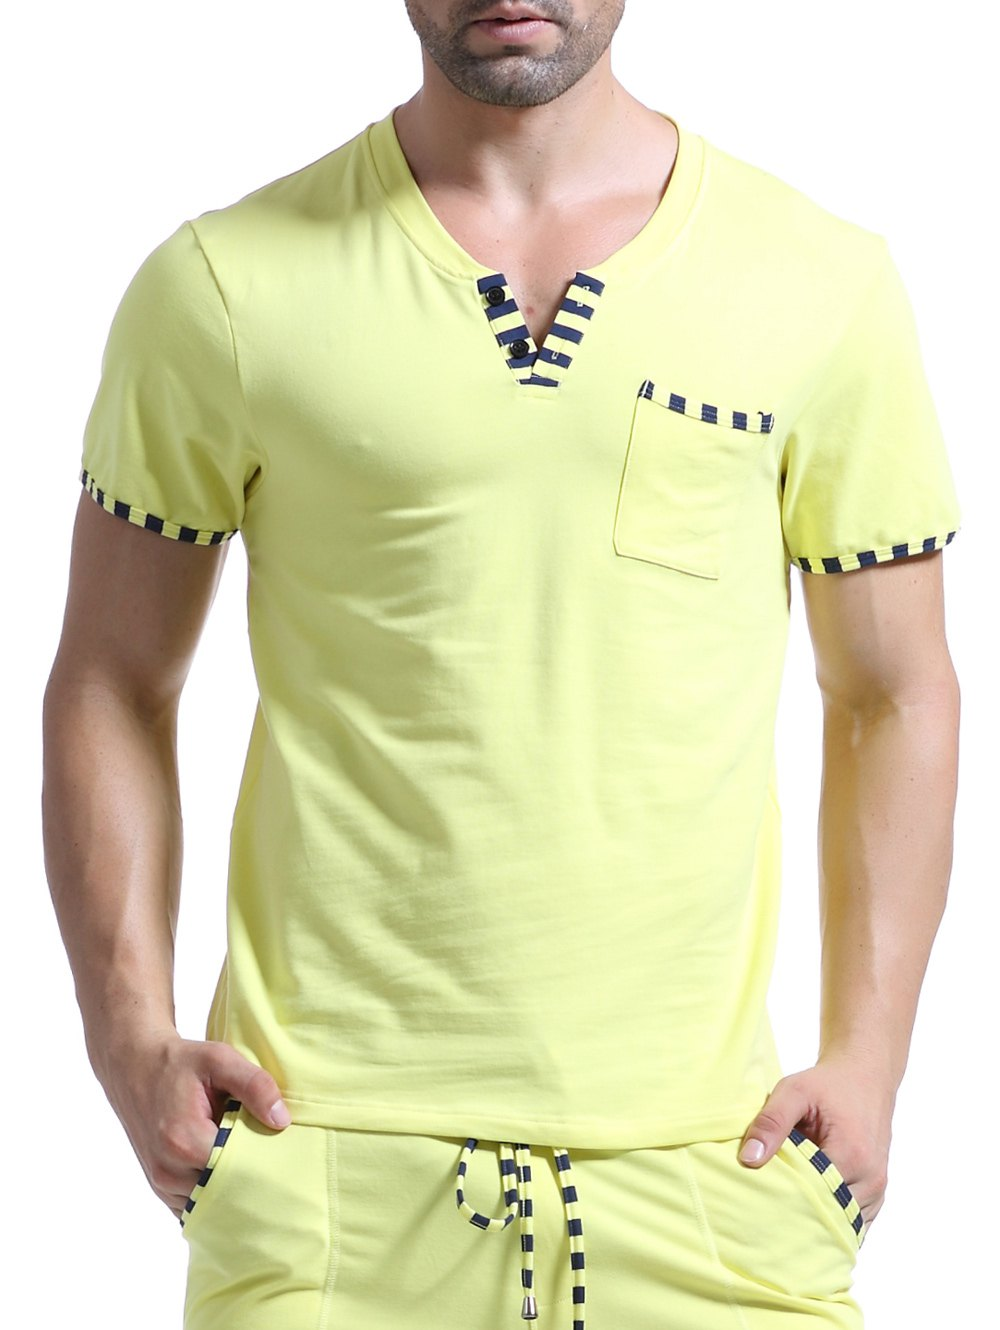 Casual V-Neck Striped Printed Short Sleeve Men's T-Shirt - YELLOW XL